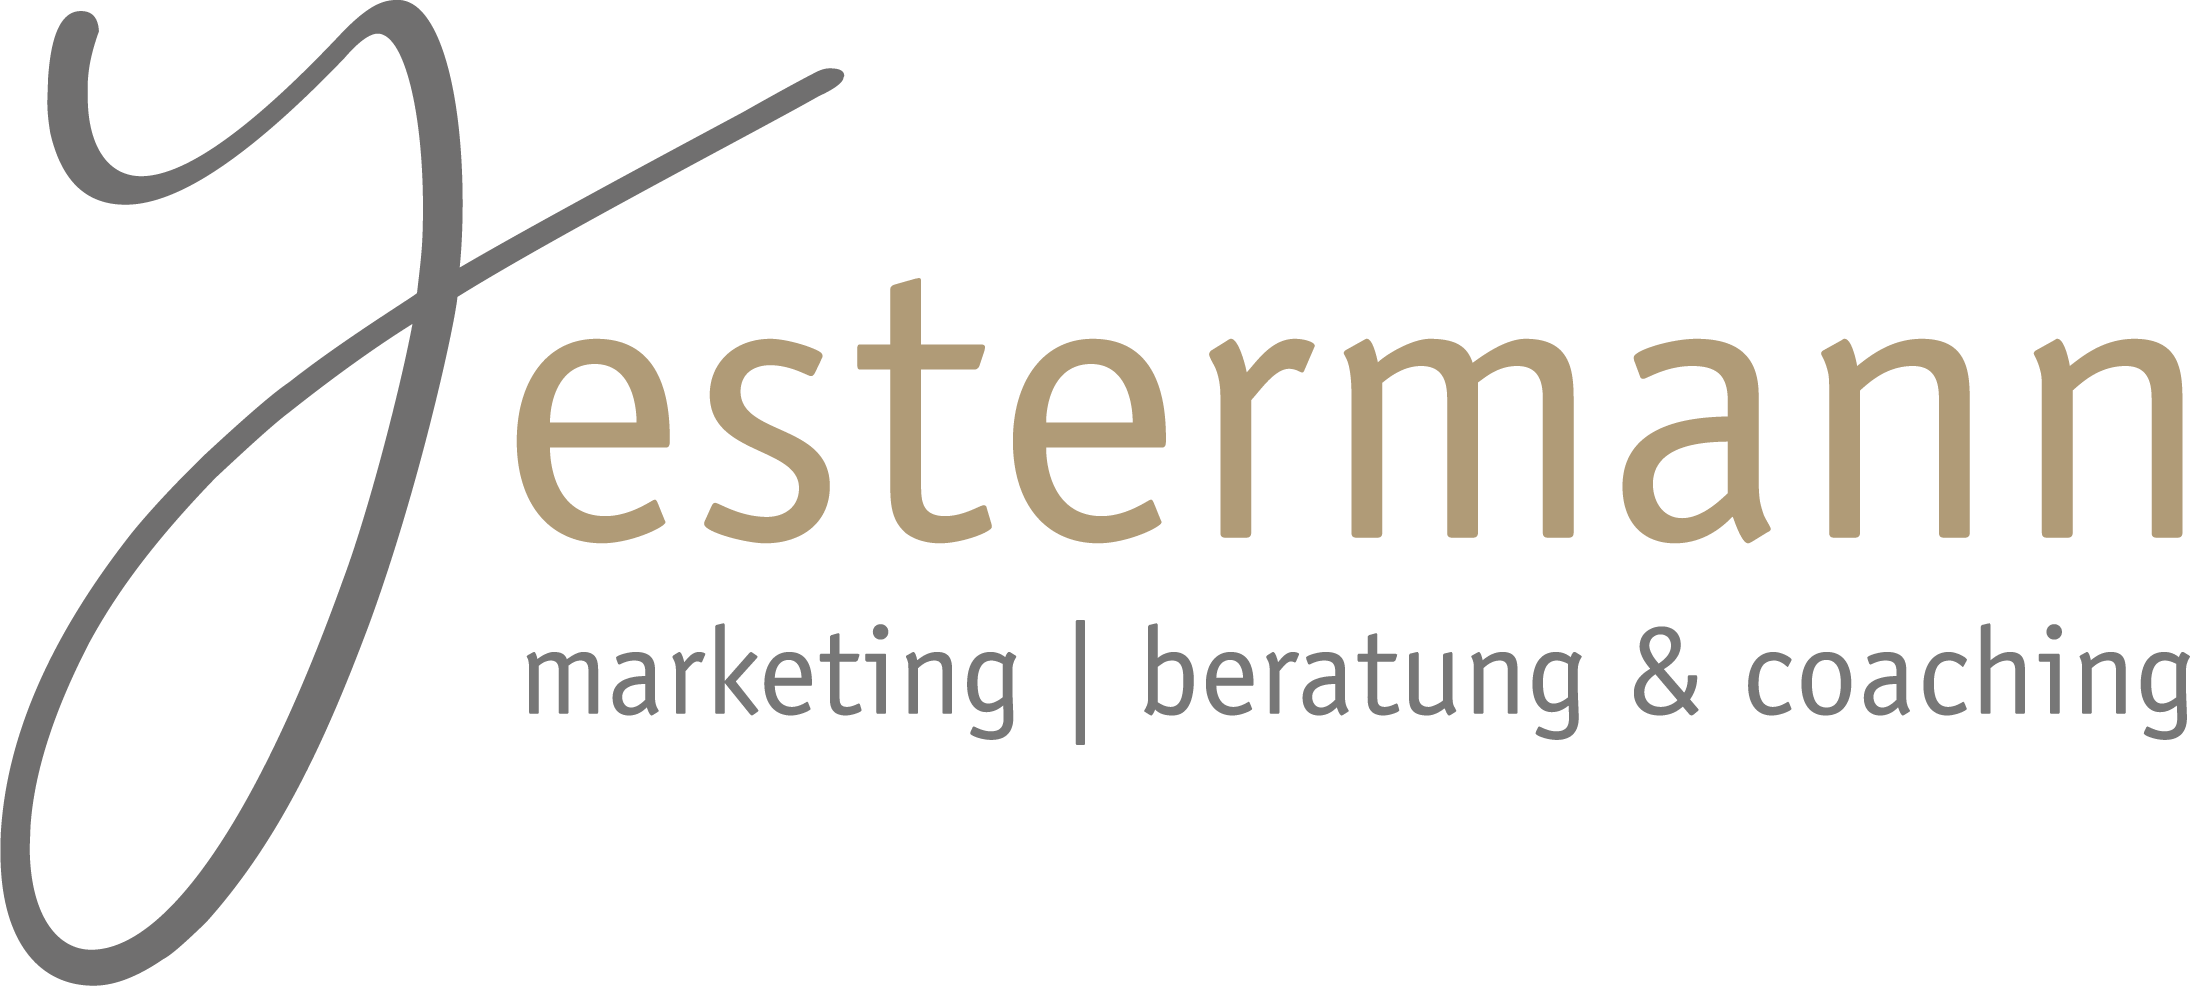 Yvonne Estermann Marketing